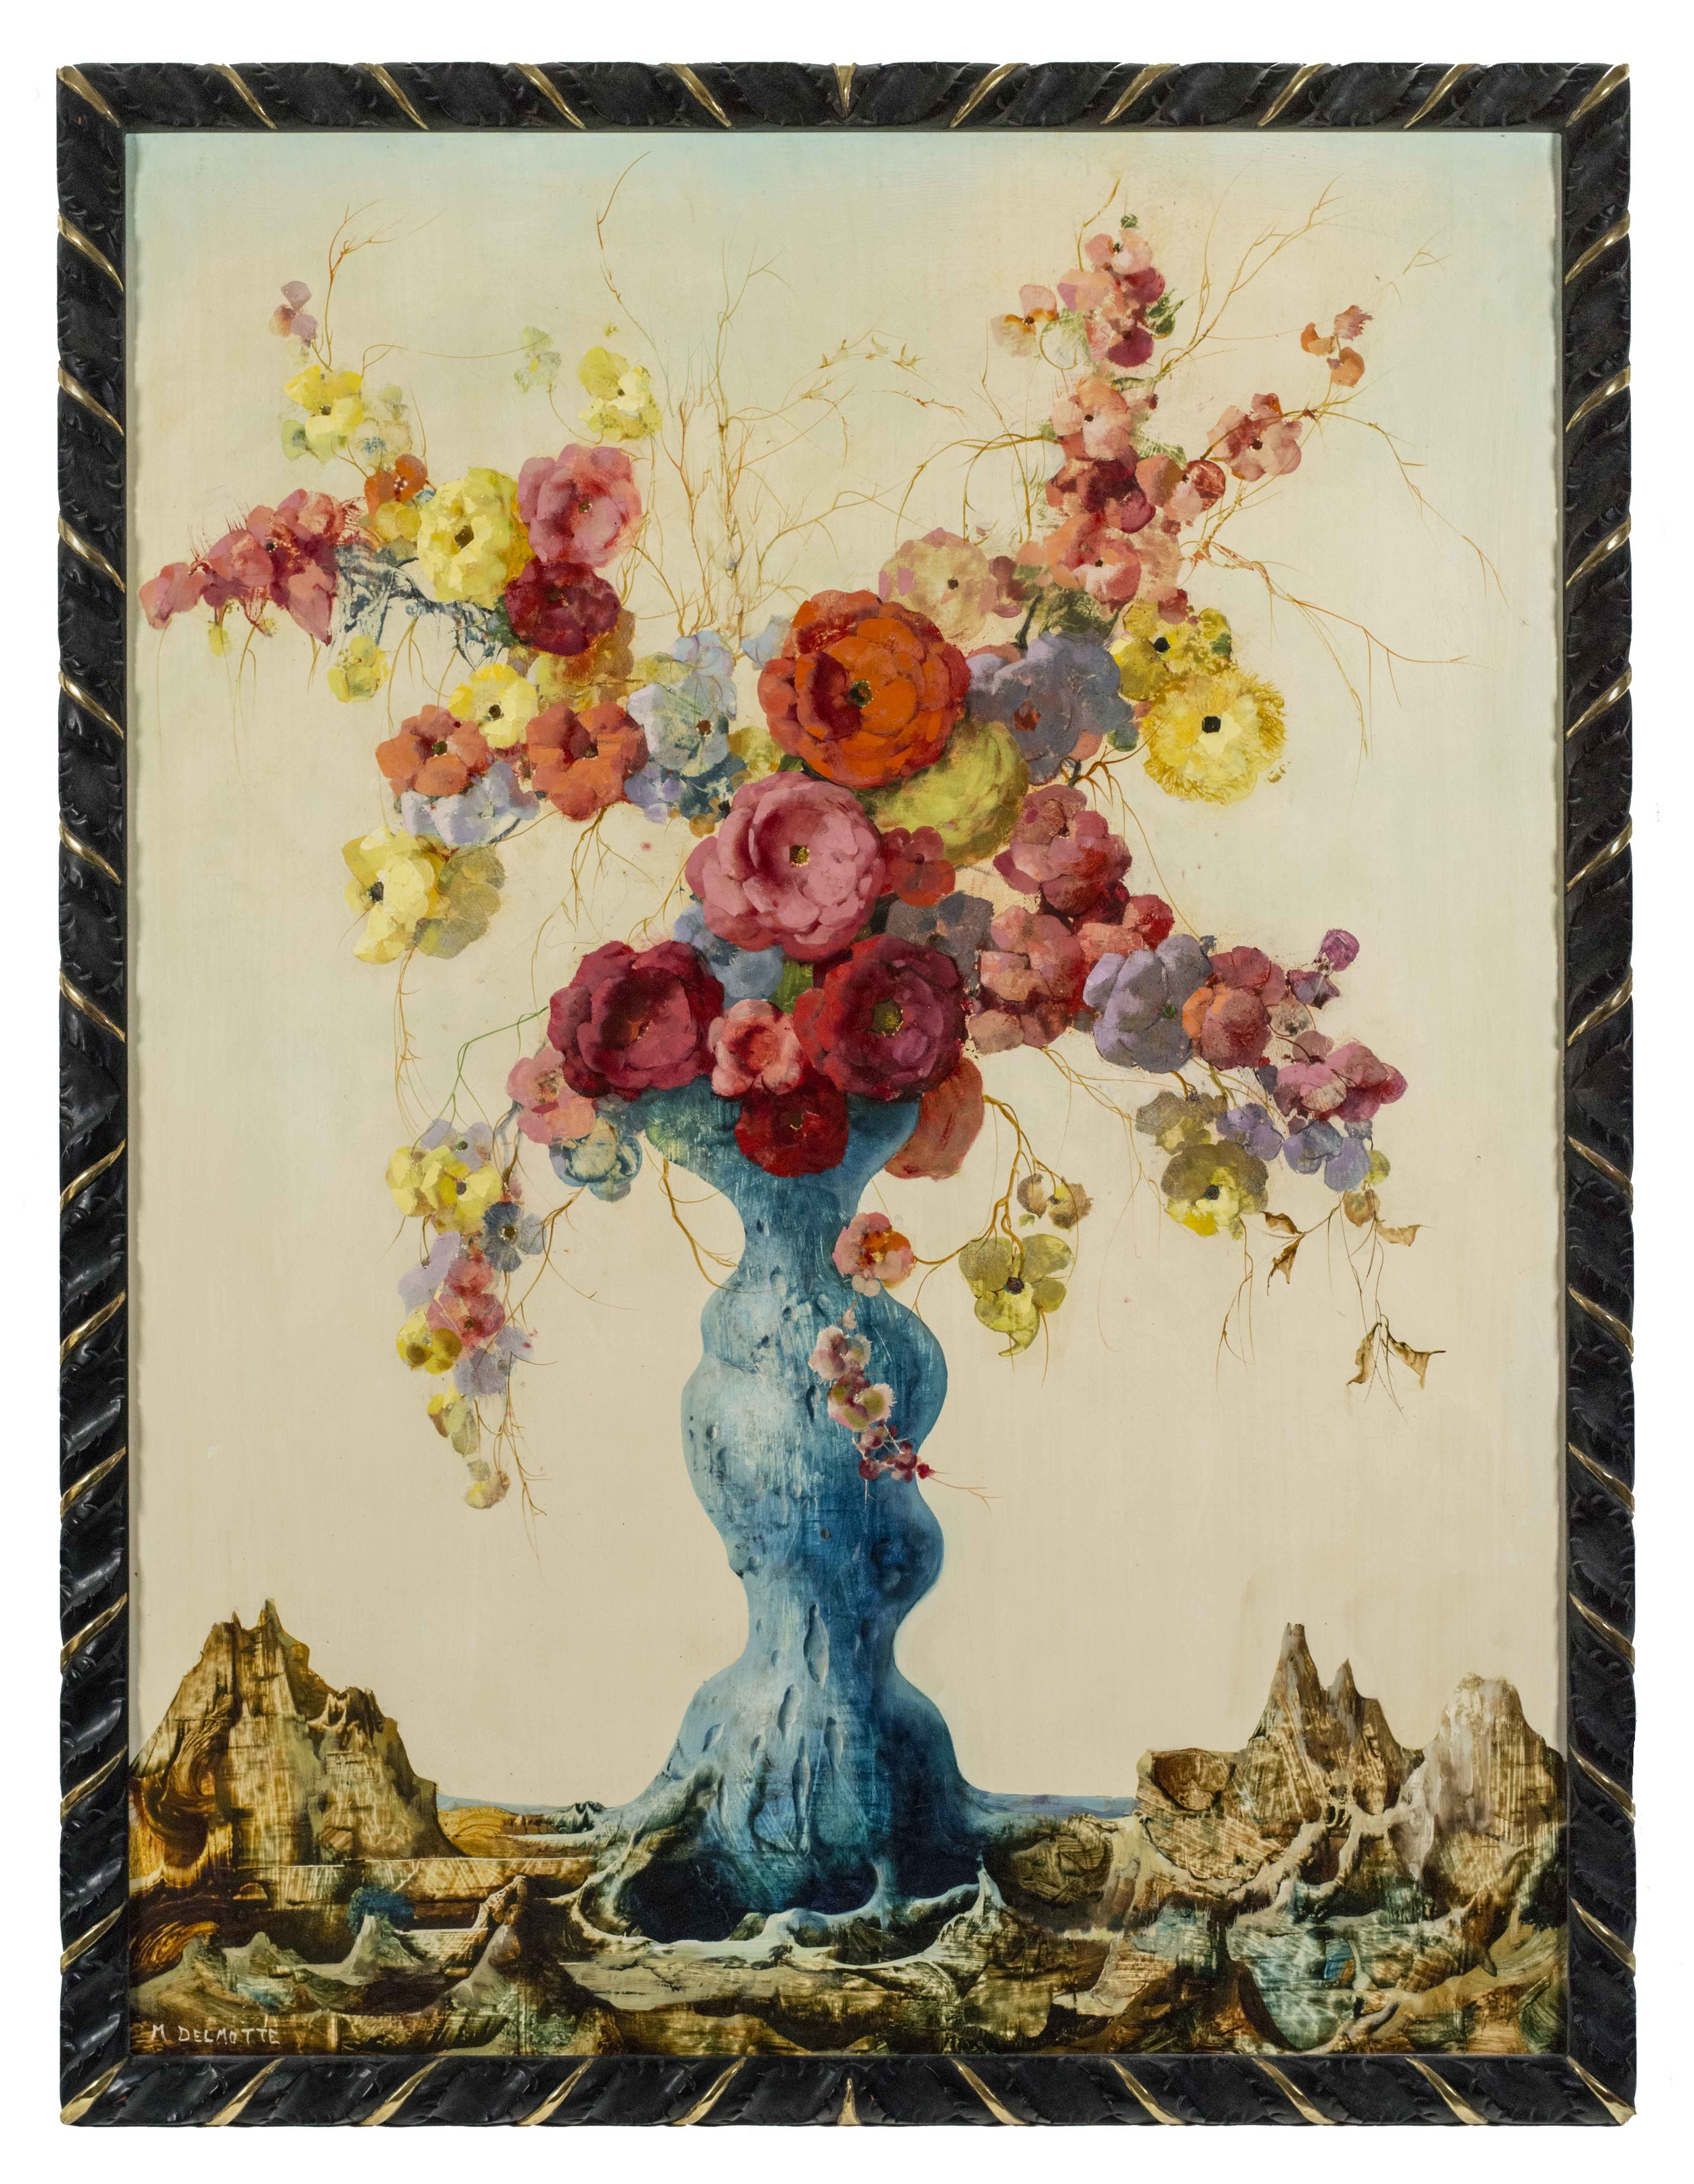 Flowers in blue vase with rocky landscape.jpg.jpg